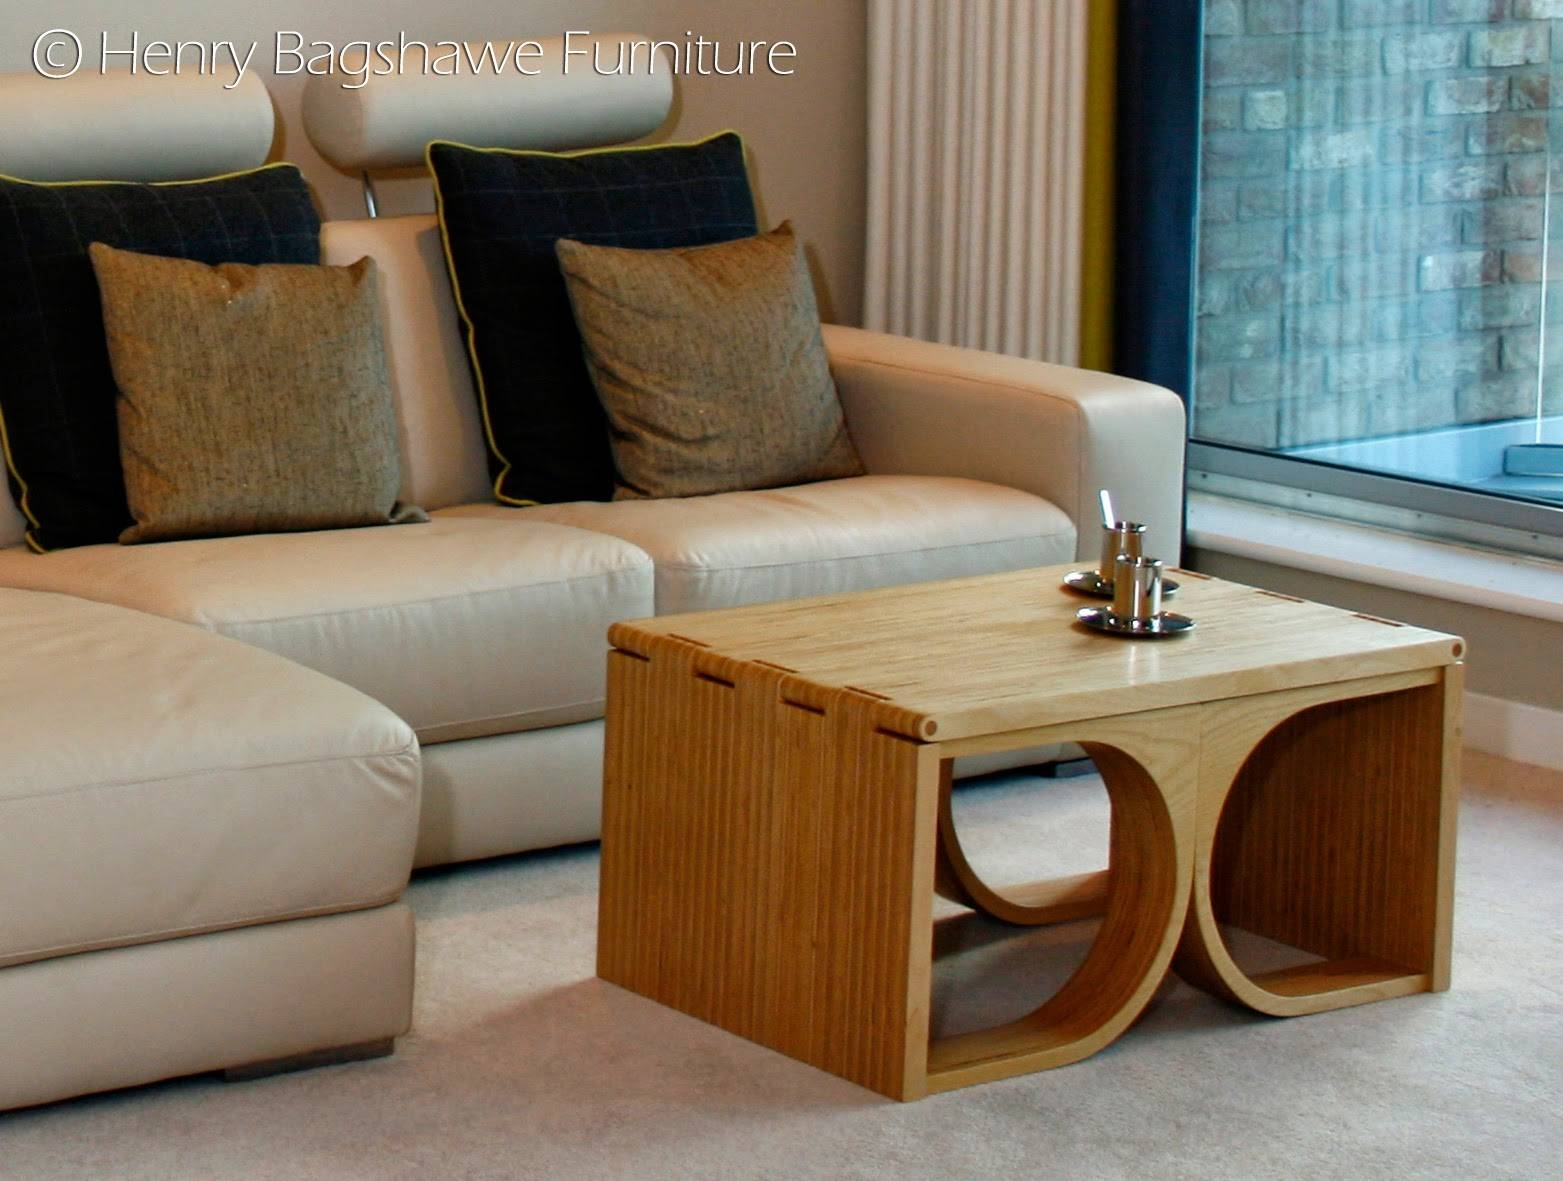 Furniture: Extendable Coffee Table | Skinny Side Table | Storage intended for L Shaped Coffee Tables (Image 14 of 30)